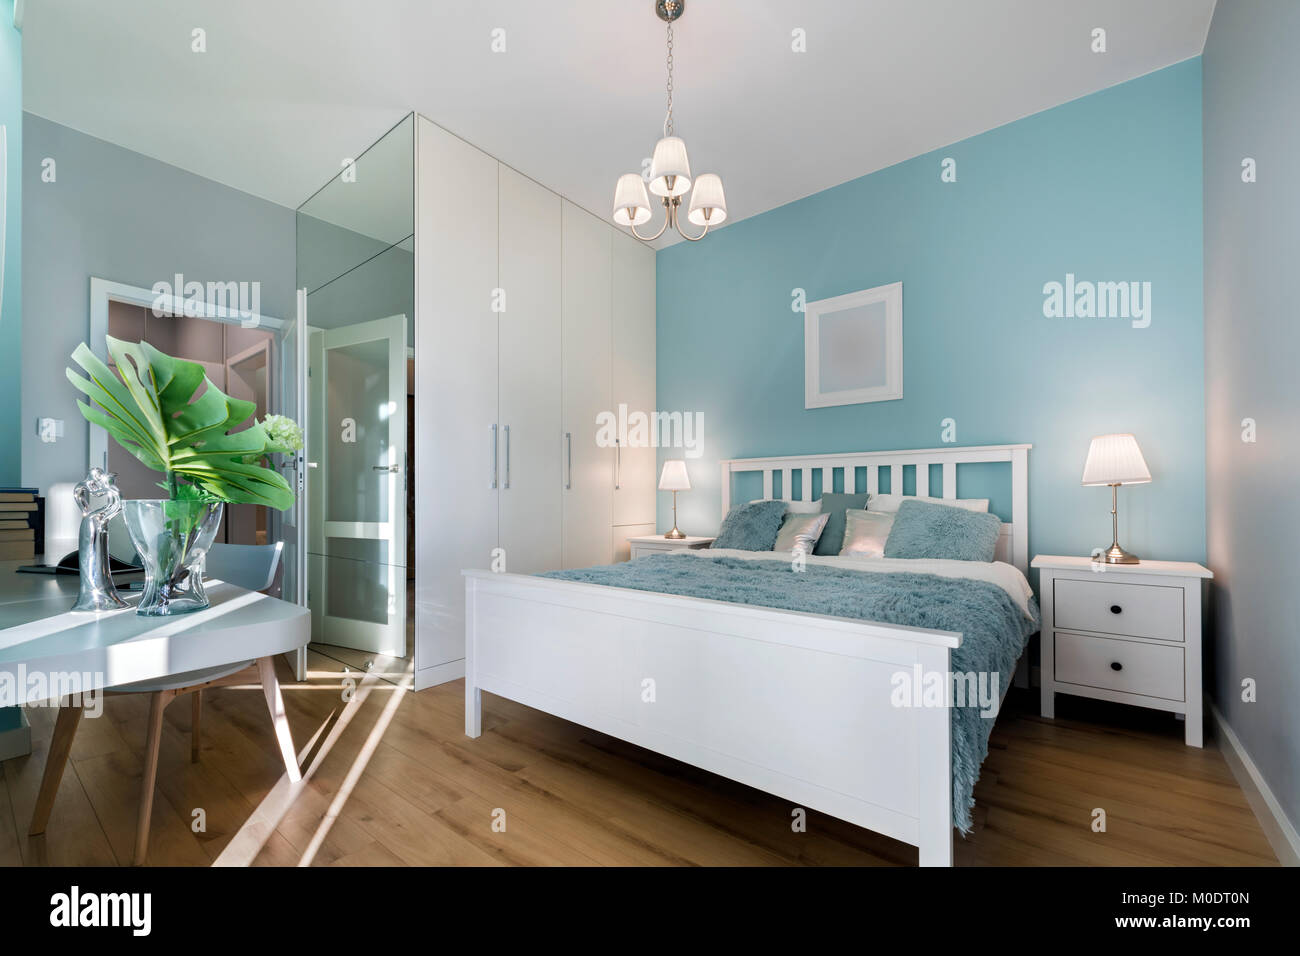 Stylish Bedroom With Mirror Wall In Pastel Colors Stock Photo Alamy